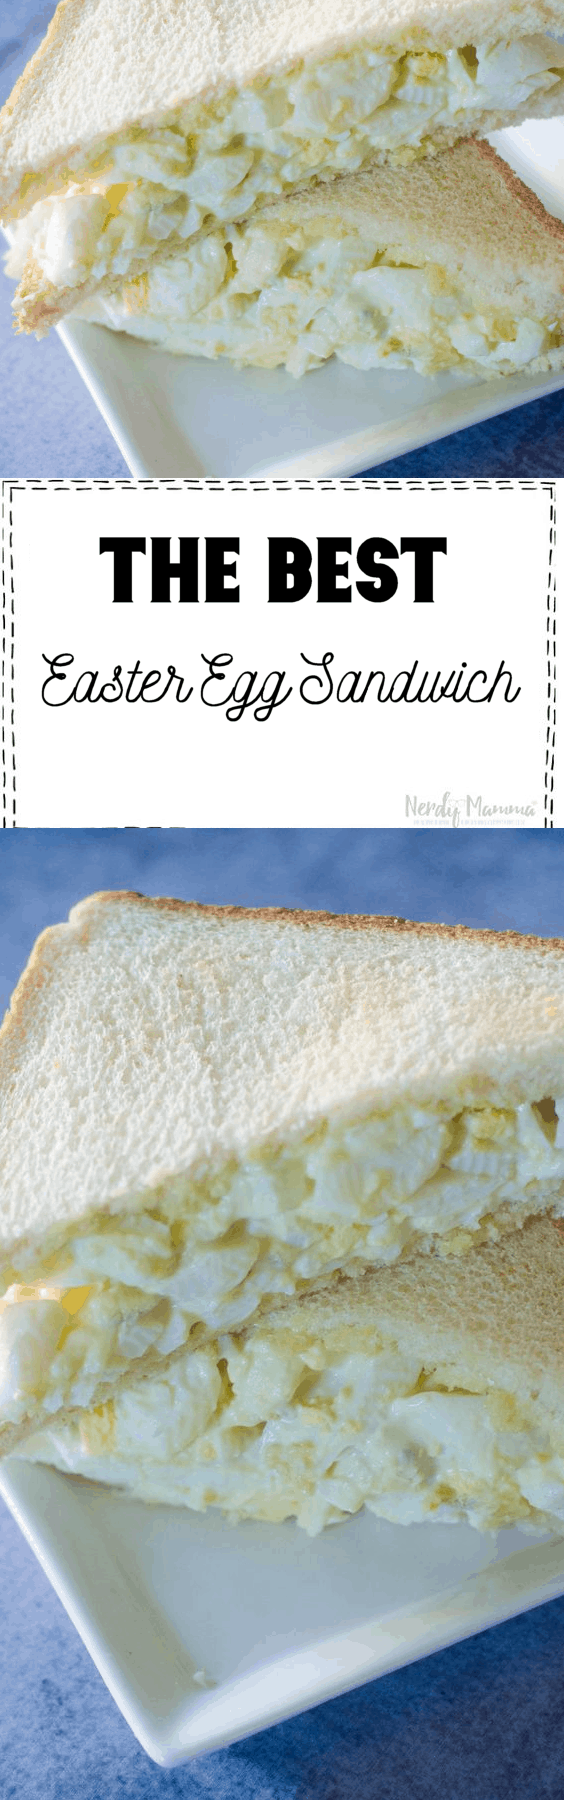 The Best Easter Egg Sandwich